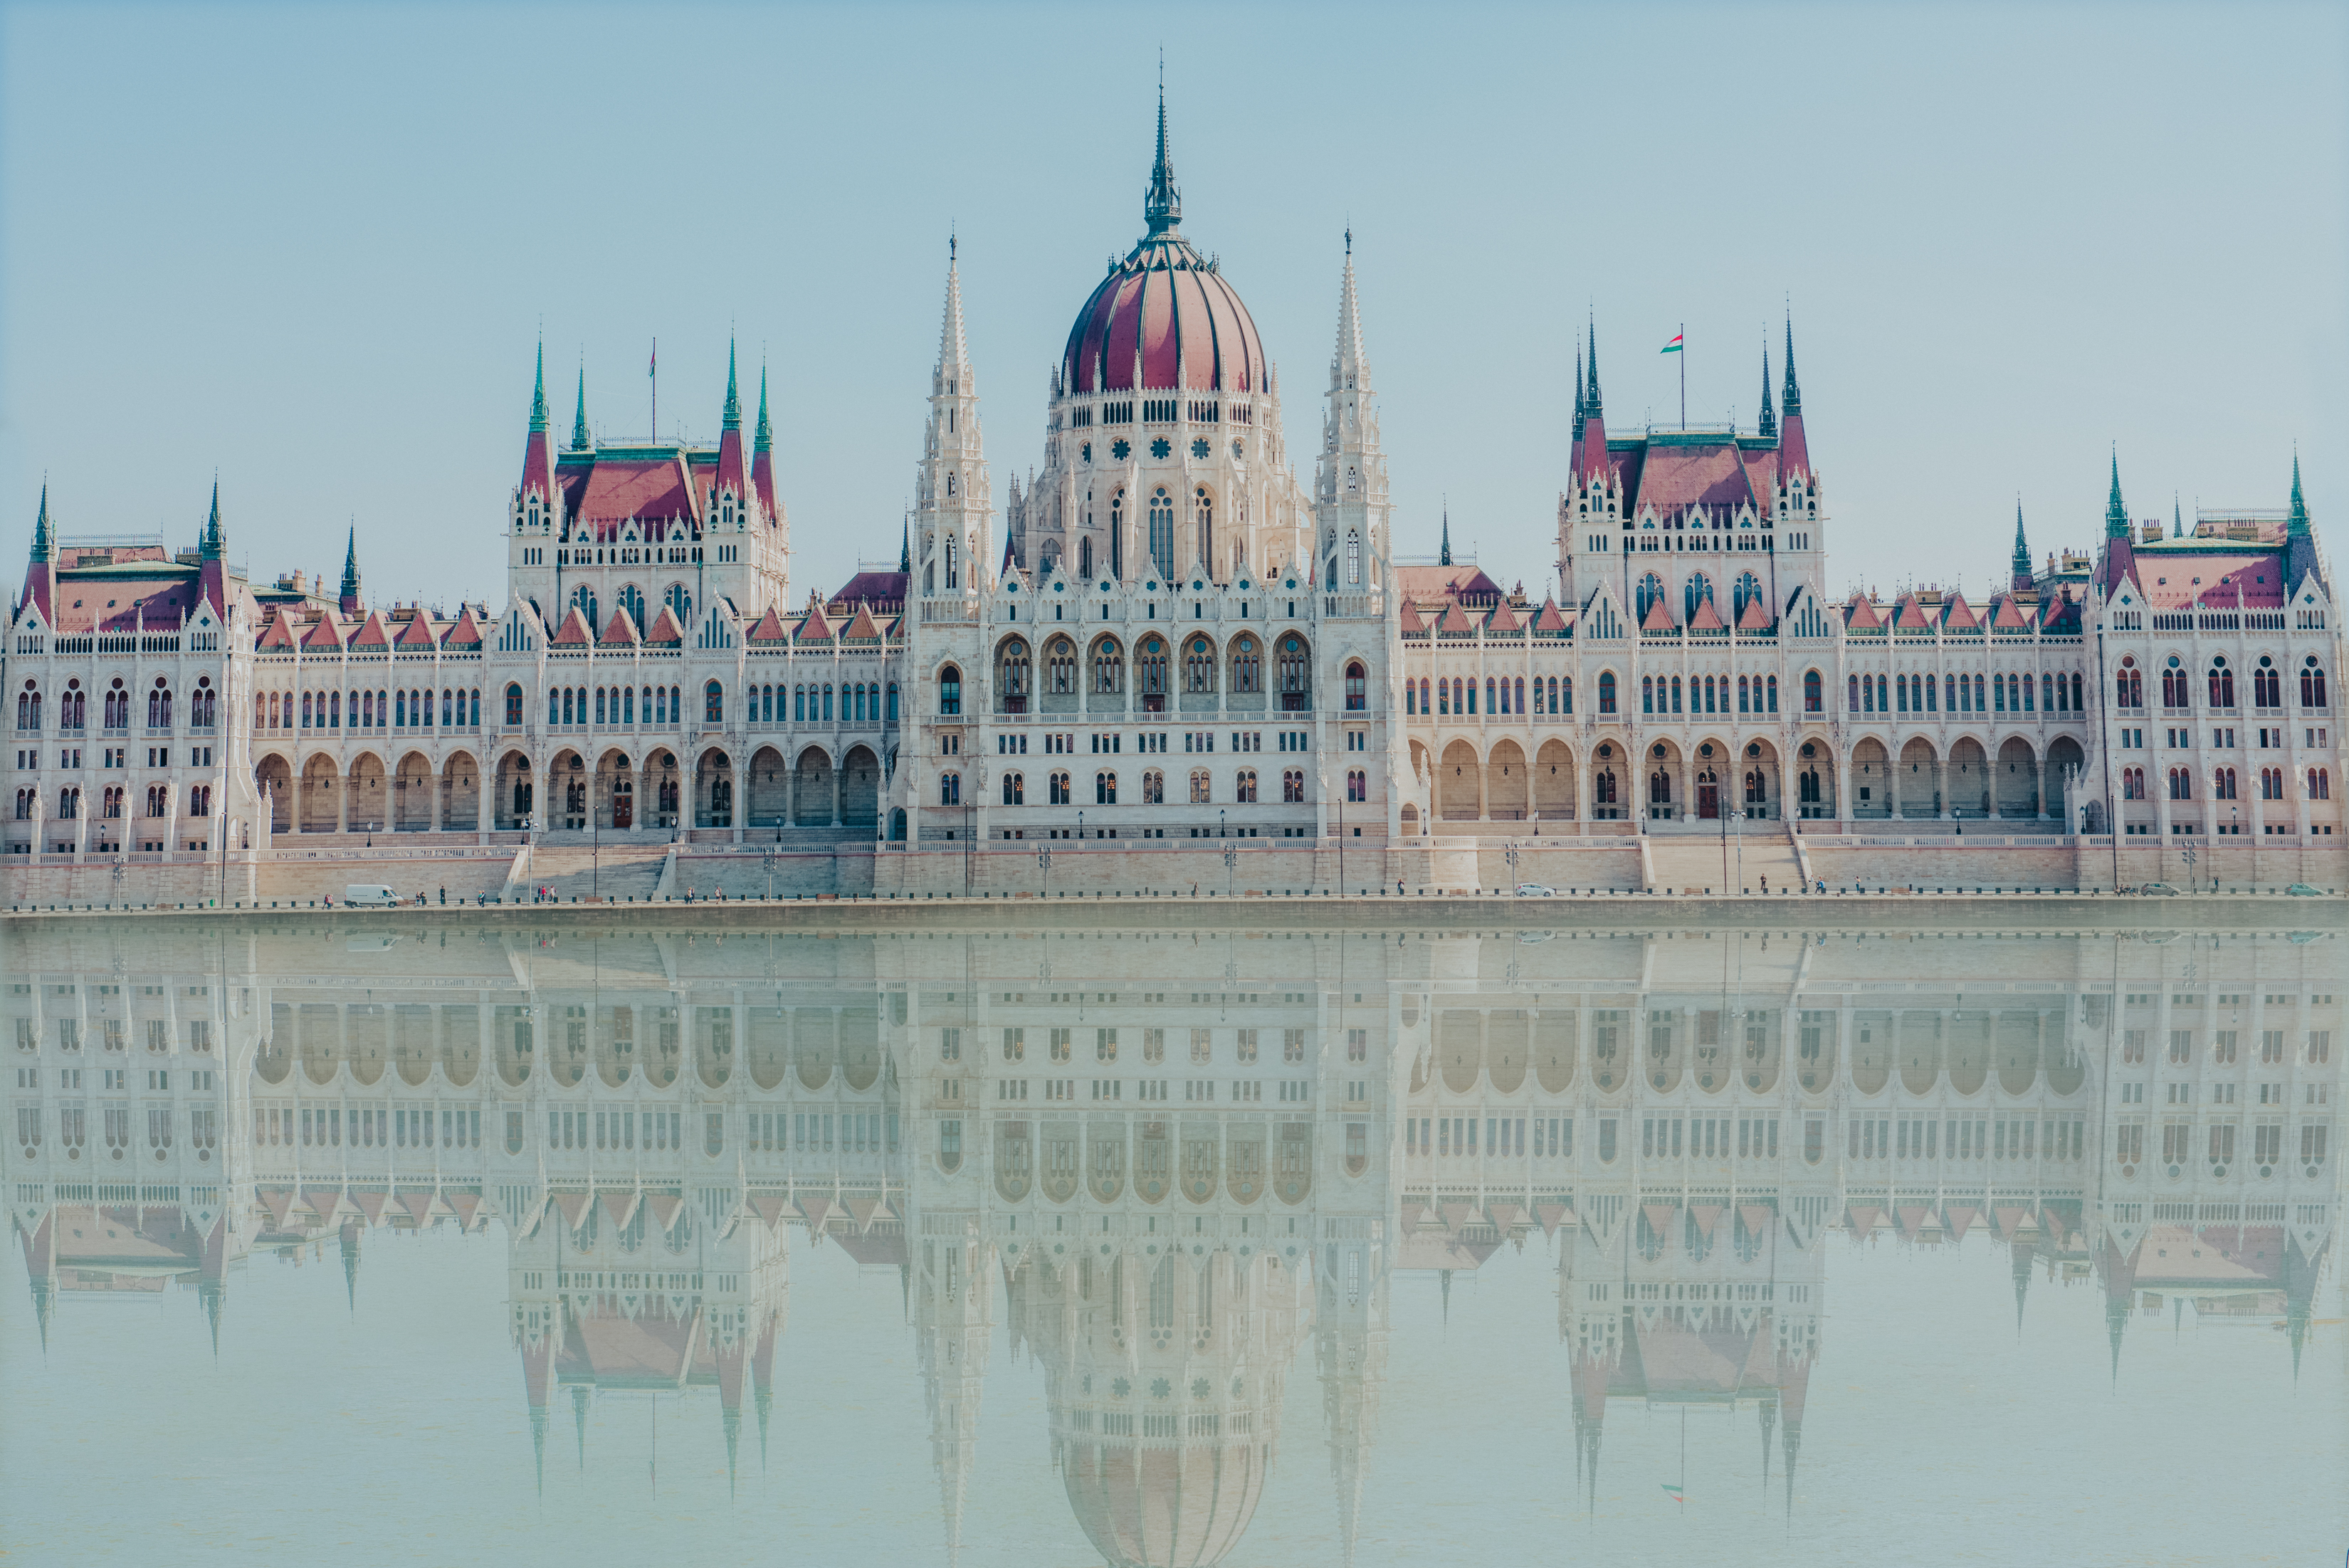 Parliament in Budapest, Hungary